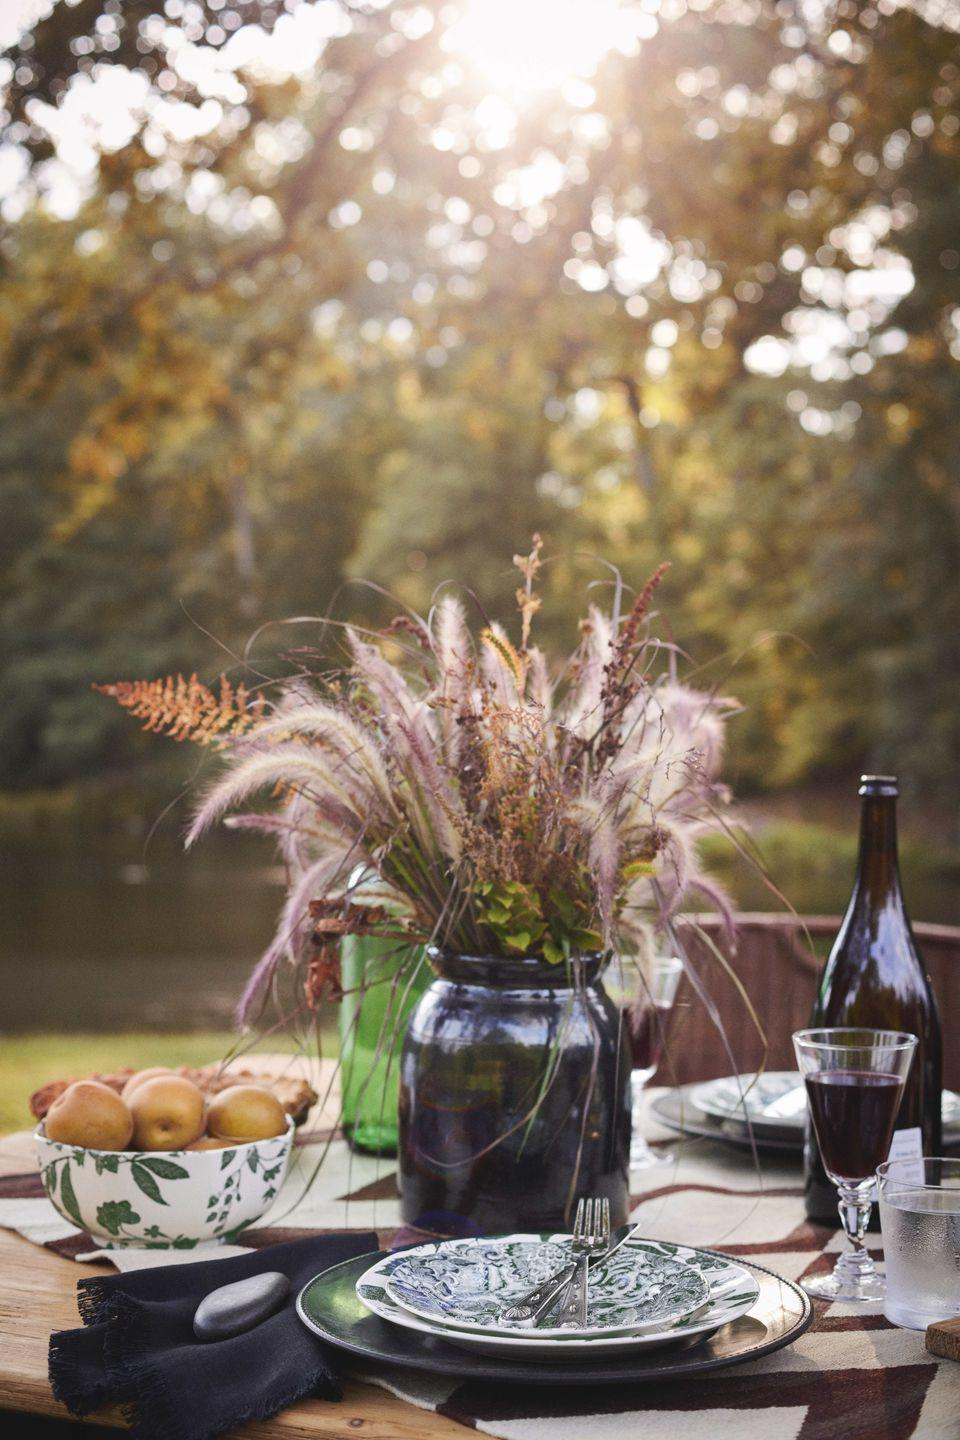 """<p>A centerpiece of fall grasses by <a href=""""https://www.burleigh.co.uk/"""" rel=""""nofollow noopener"""" target=""""_blank"""" data-ylk=""""slk:Burleigh"""" class=""""link rapid-noclick-resp"""">Burleigh</a> and <a href=""""https://www.ralphlauren.com/"""" rel=""""nofollow noopener"""" target=""""_blank"""" data-ylk=""""slk:Ralph Lauren"""" class=""""link rapid-noclick-resp"""">Ralph Lauren</a> with a bowl of apples feels laid-back yet utterly sophisticated for an easy, cool-weather table centerpiece.</p>"""